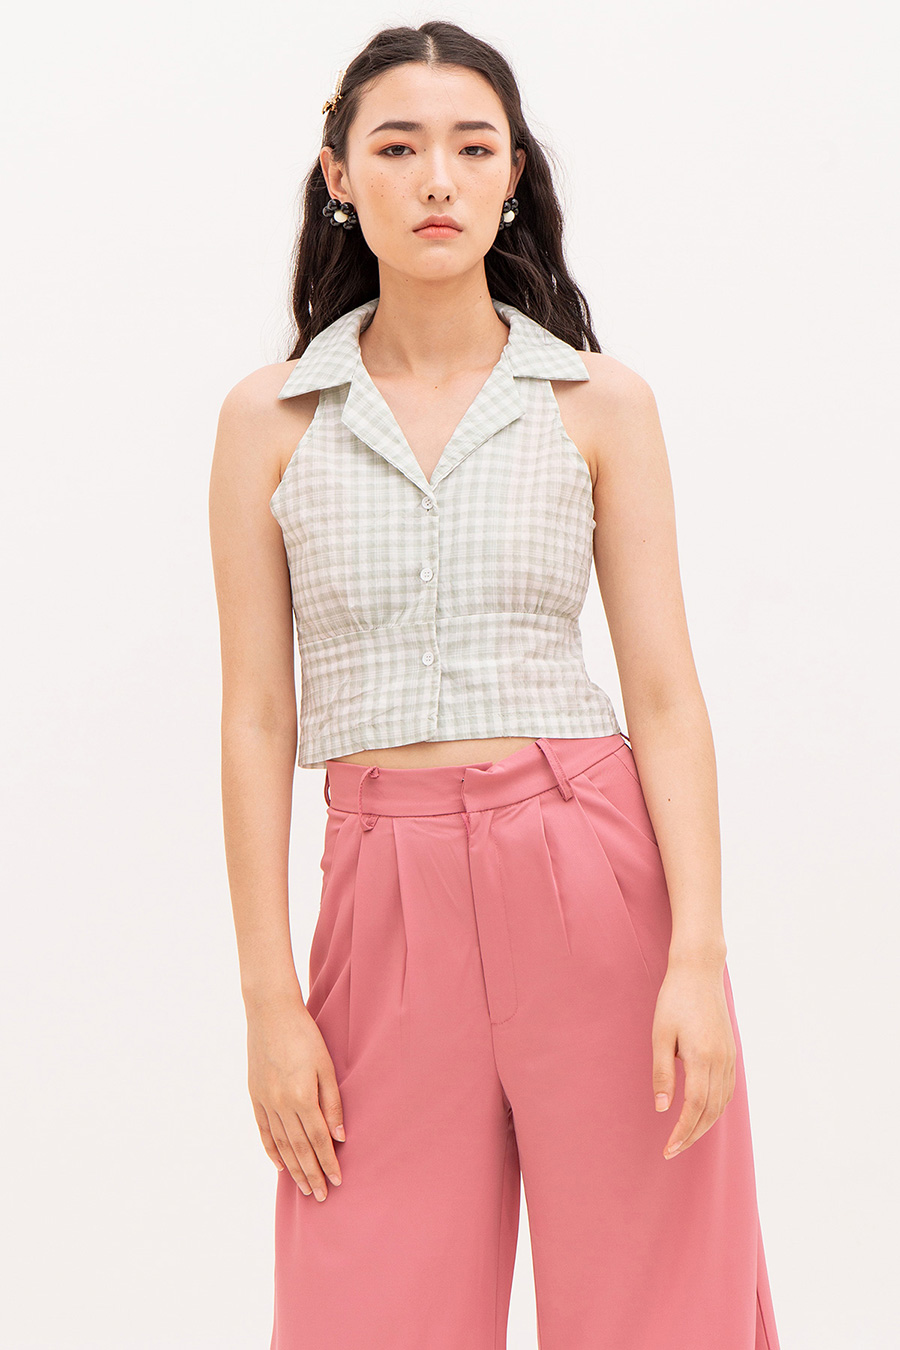 EMILIEON TOP - PLAID